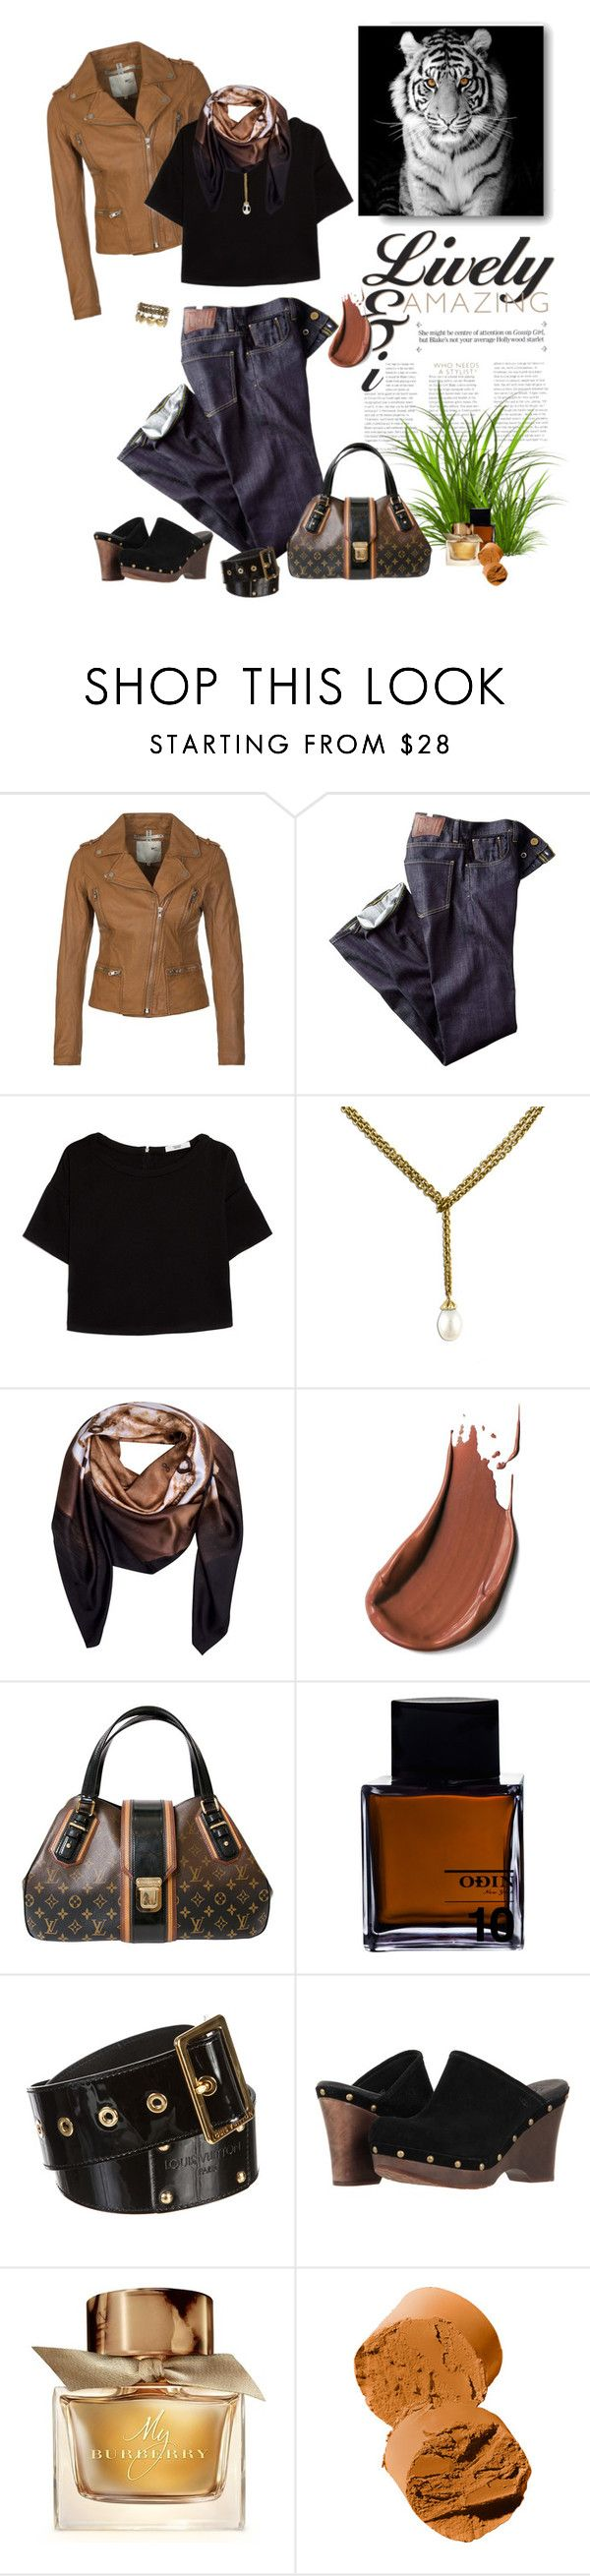 """1058"" by m-lane ❤ liked on Polyvore featuring MKT studio, Citizens of Humanity, MANGO, Trollbeads, Cristina Sabaiduc, Louis Vuitton, Odin, UGG Australia, Burberry and Bobbi Brown Cosmetics"